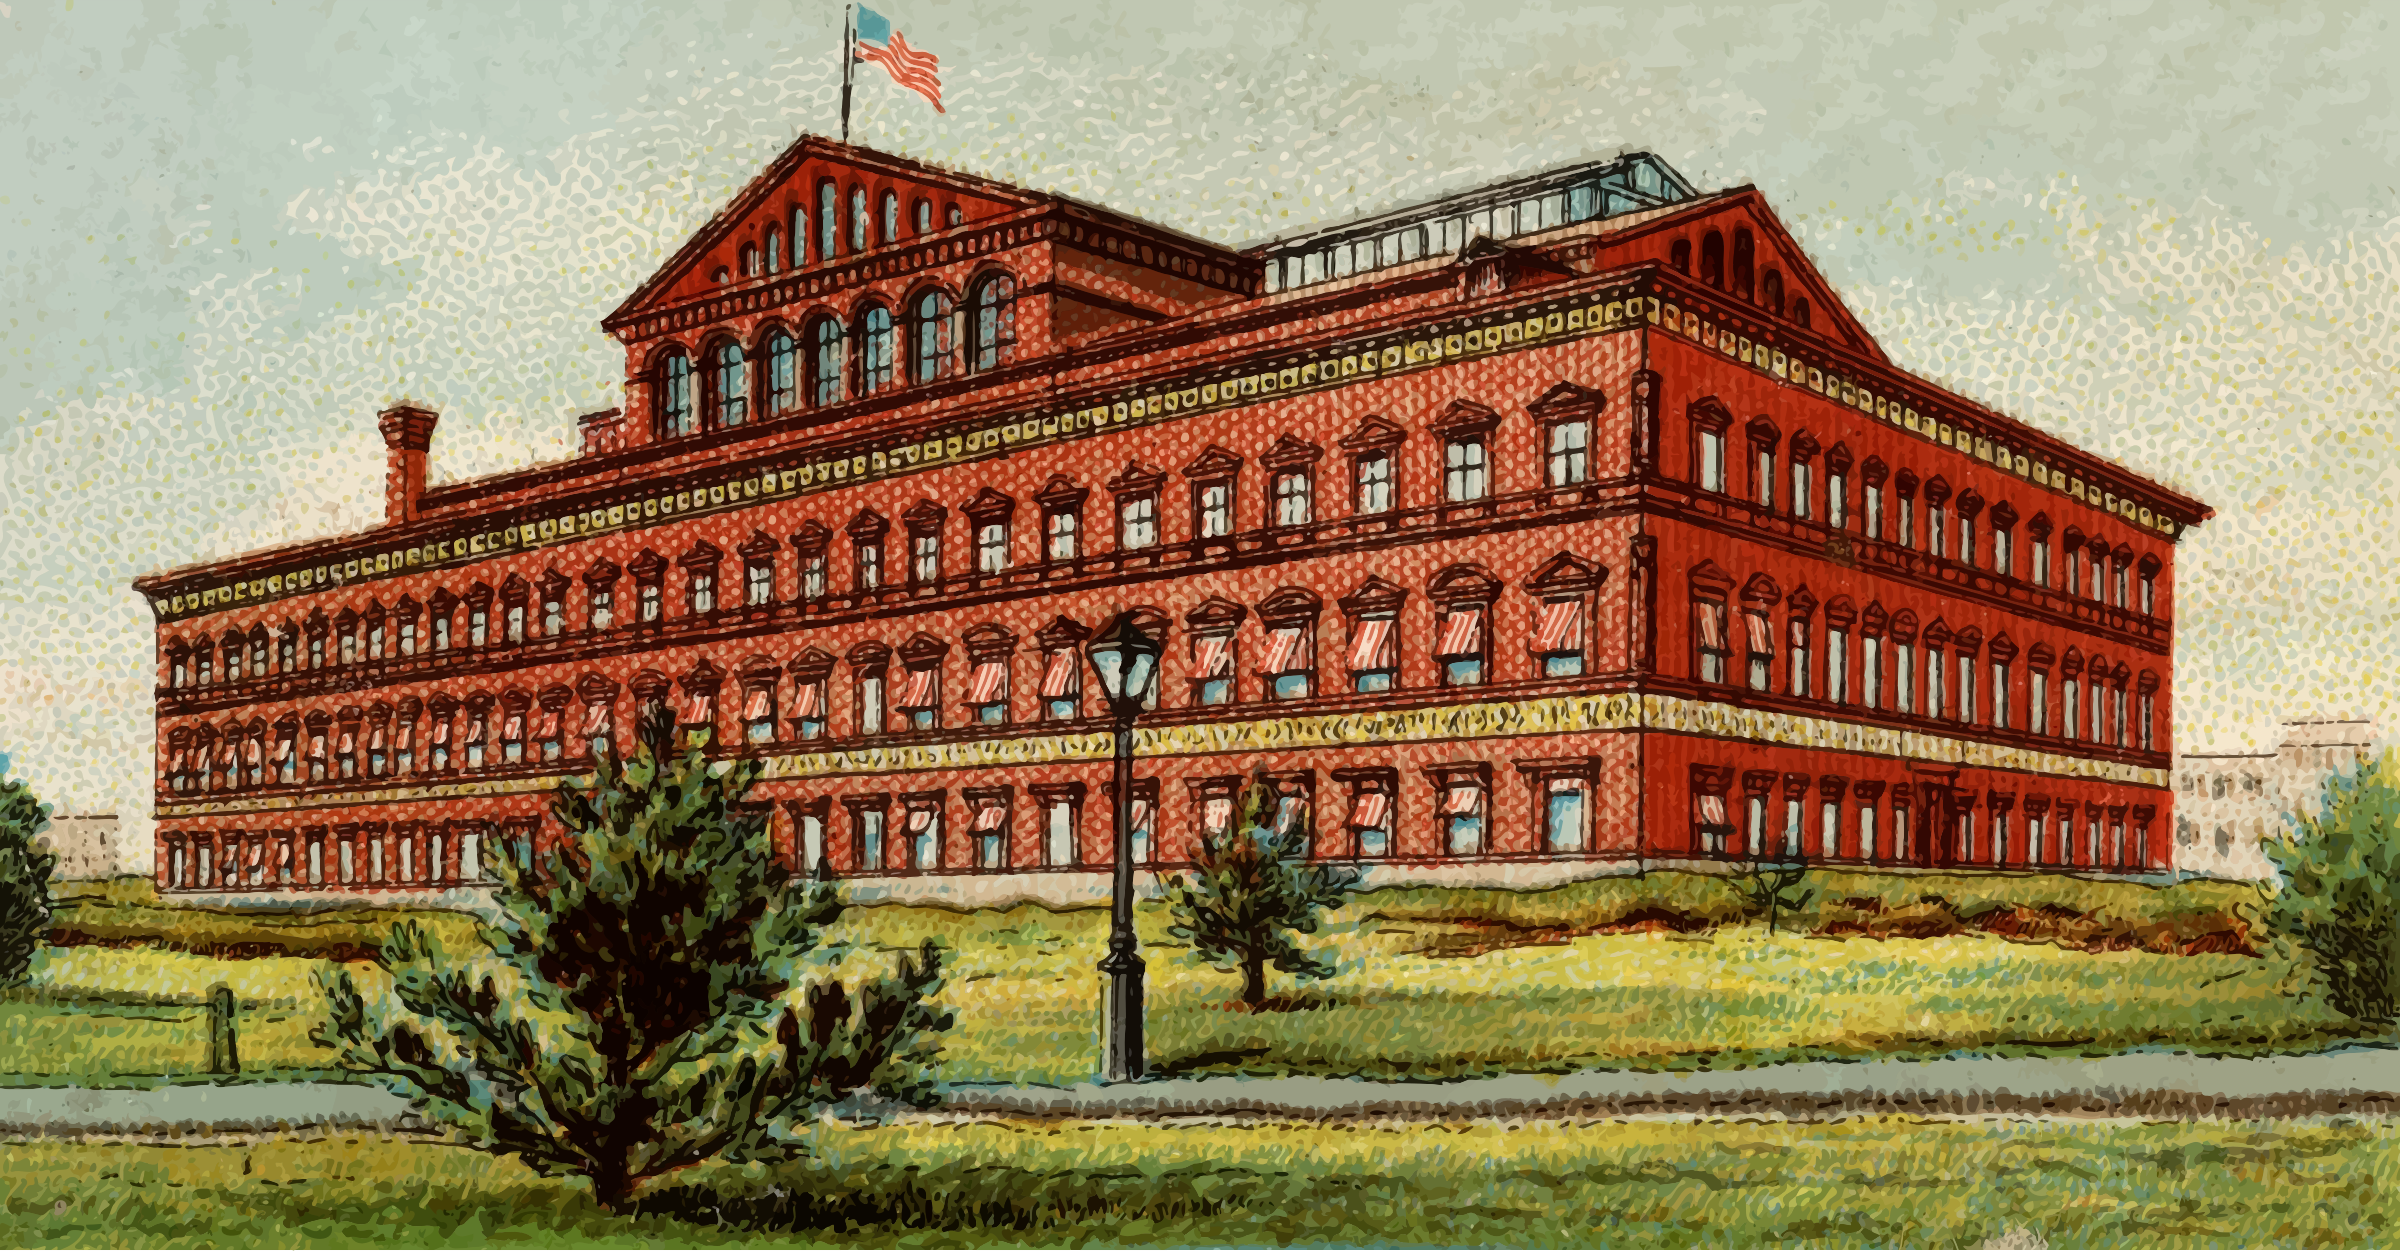 Cigarette card - Pension Building in Washington by Firkin